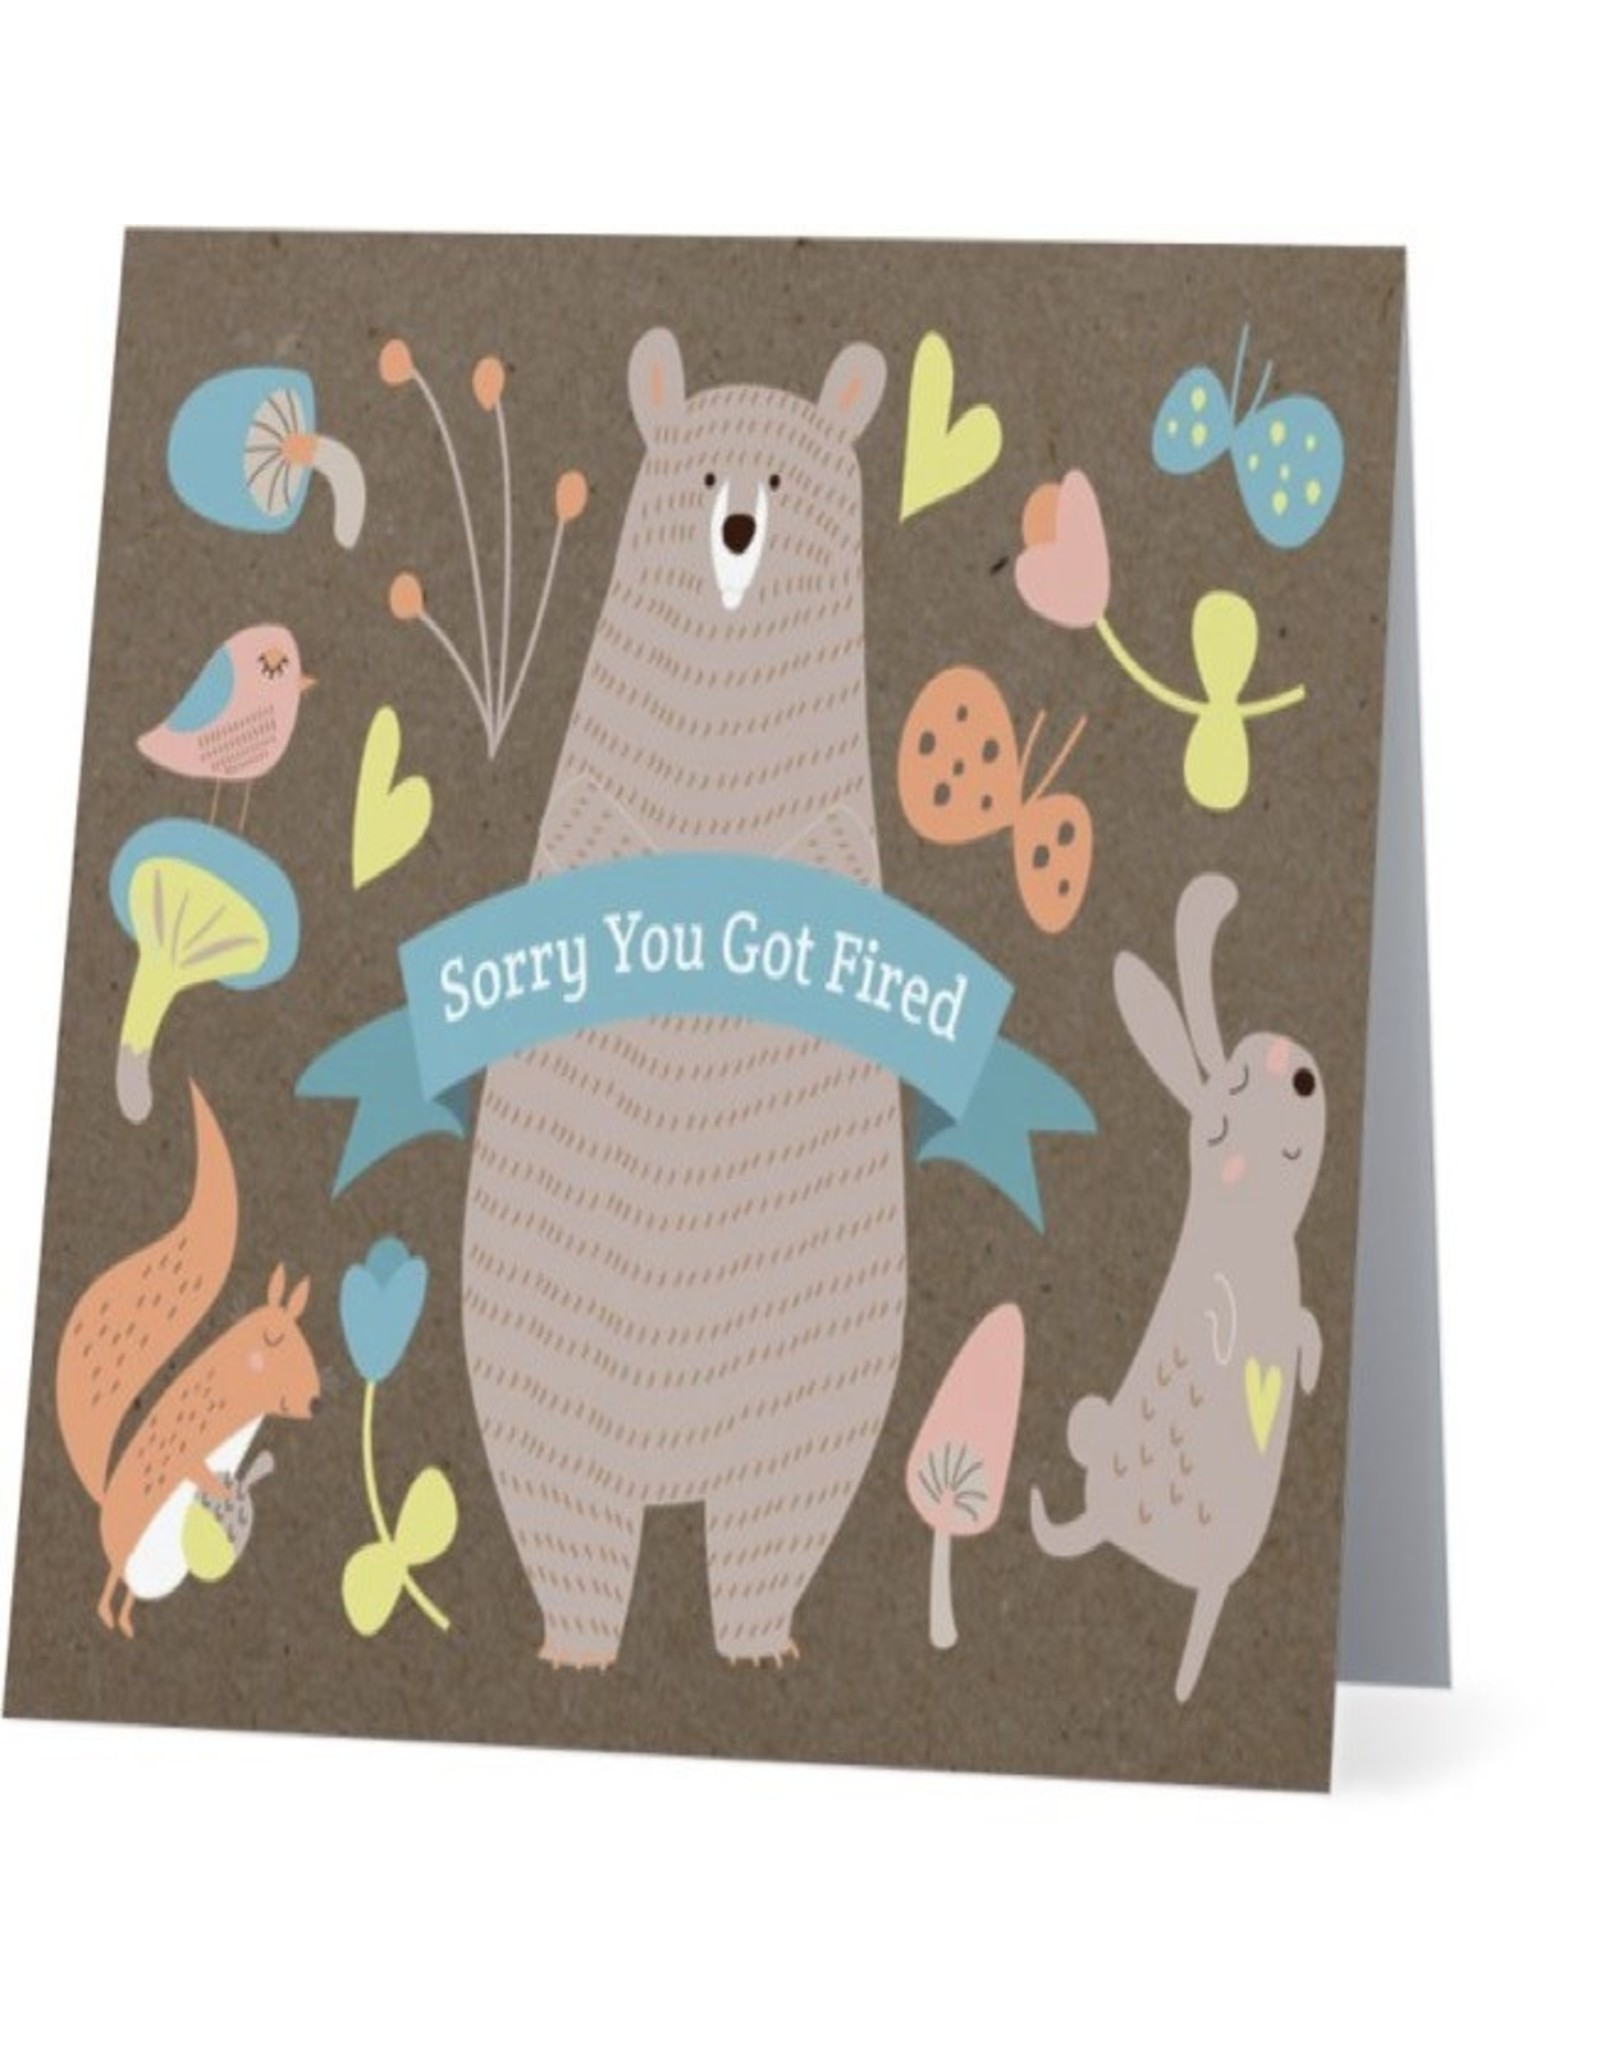 Card #027 - Sorry You Got Fired